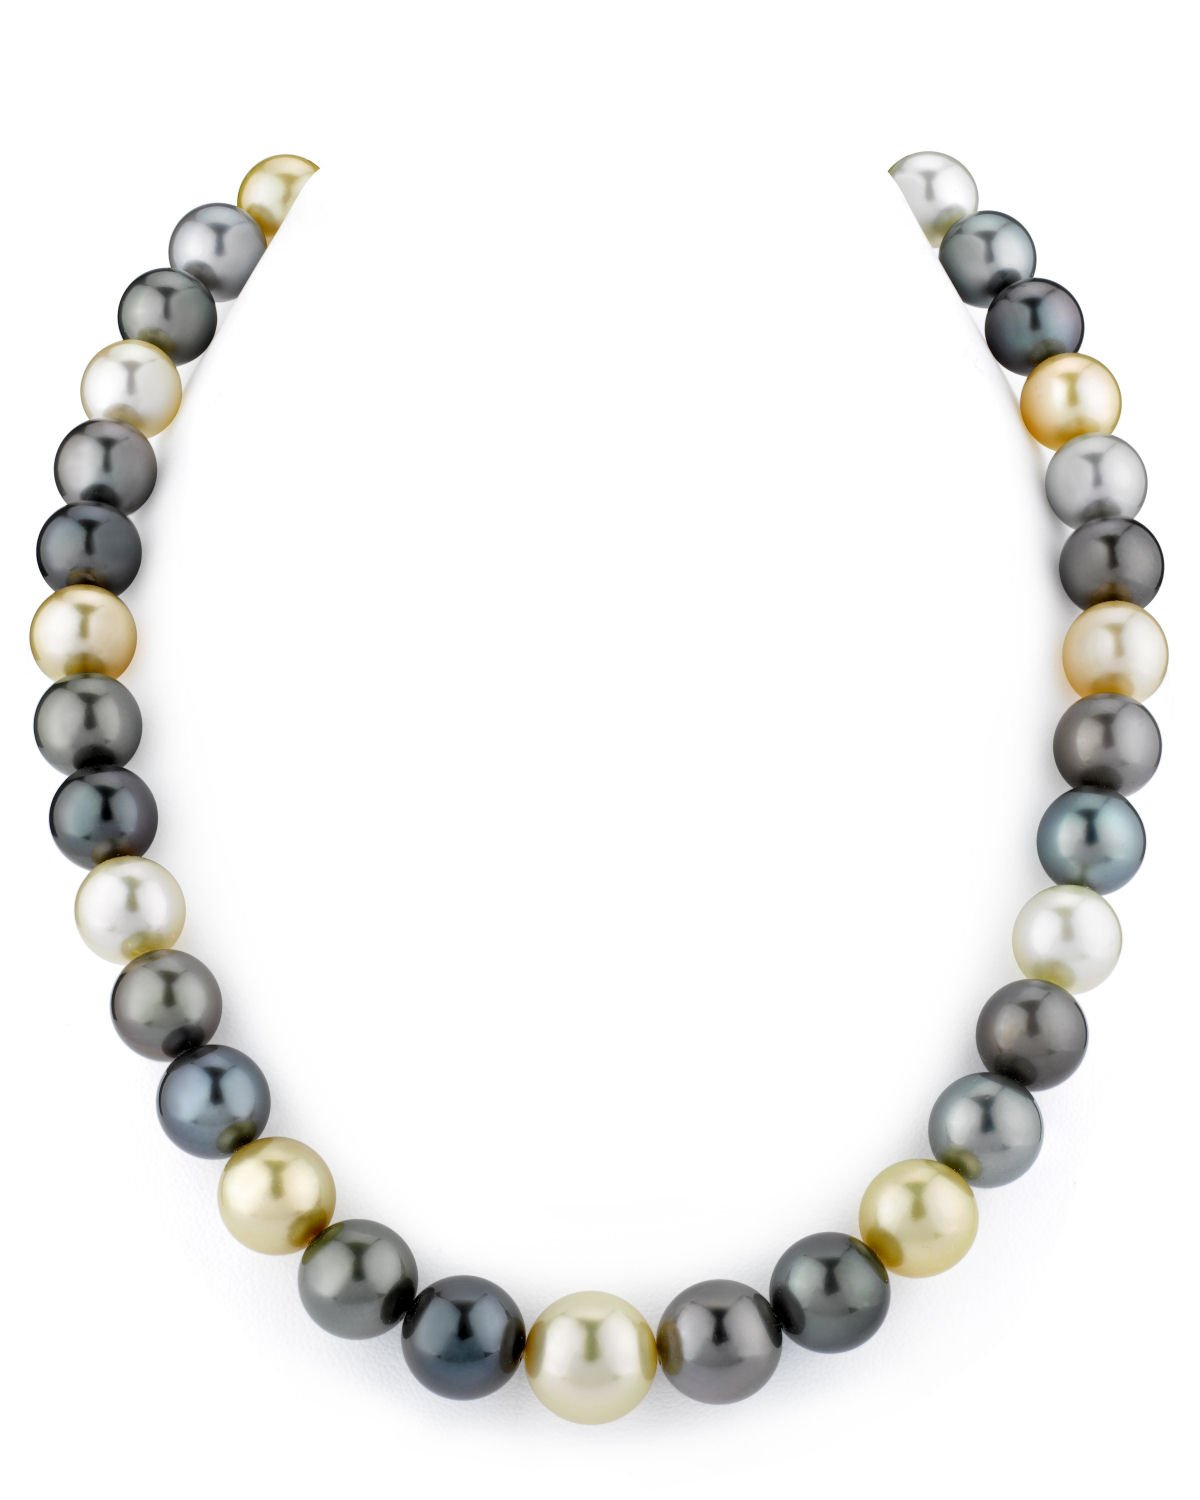 10-12mm South Sea Multicolor Pearl Necklace - AAAA Quality